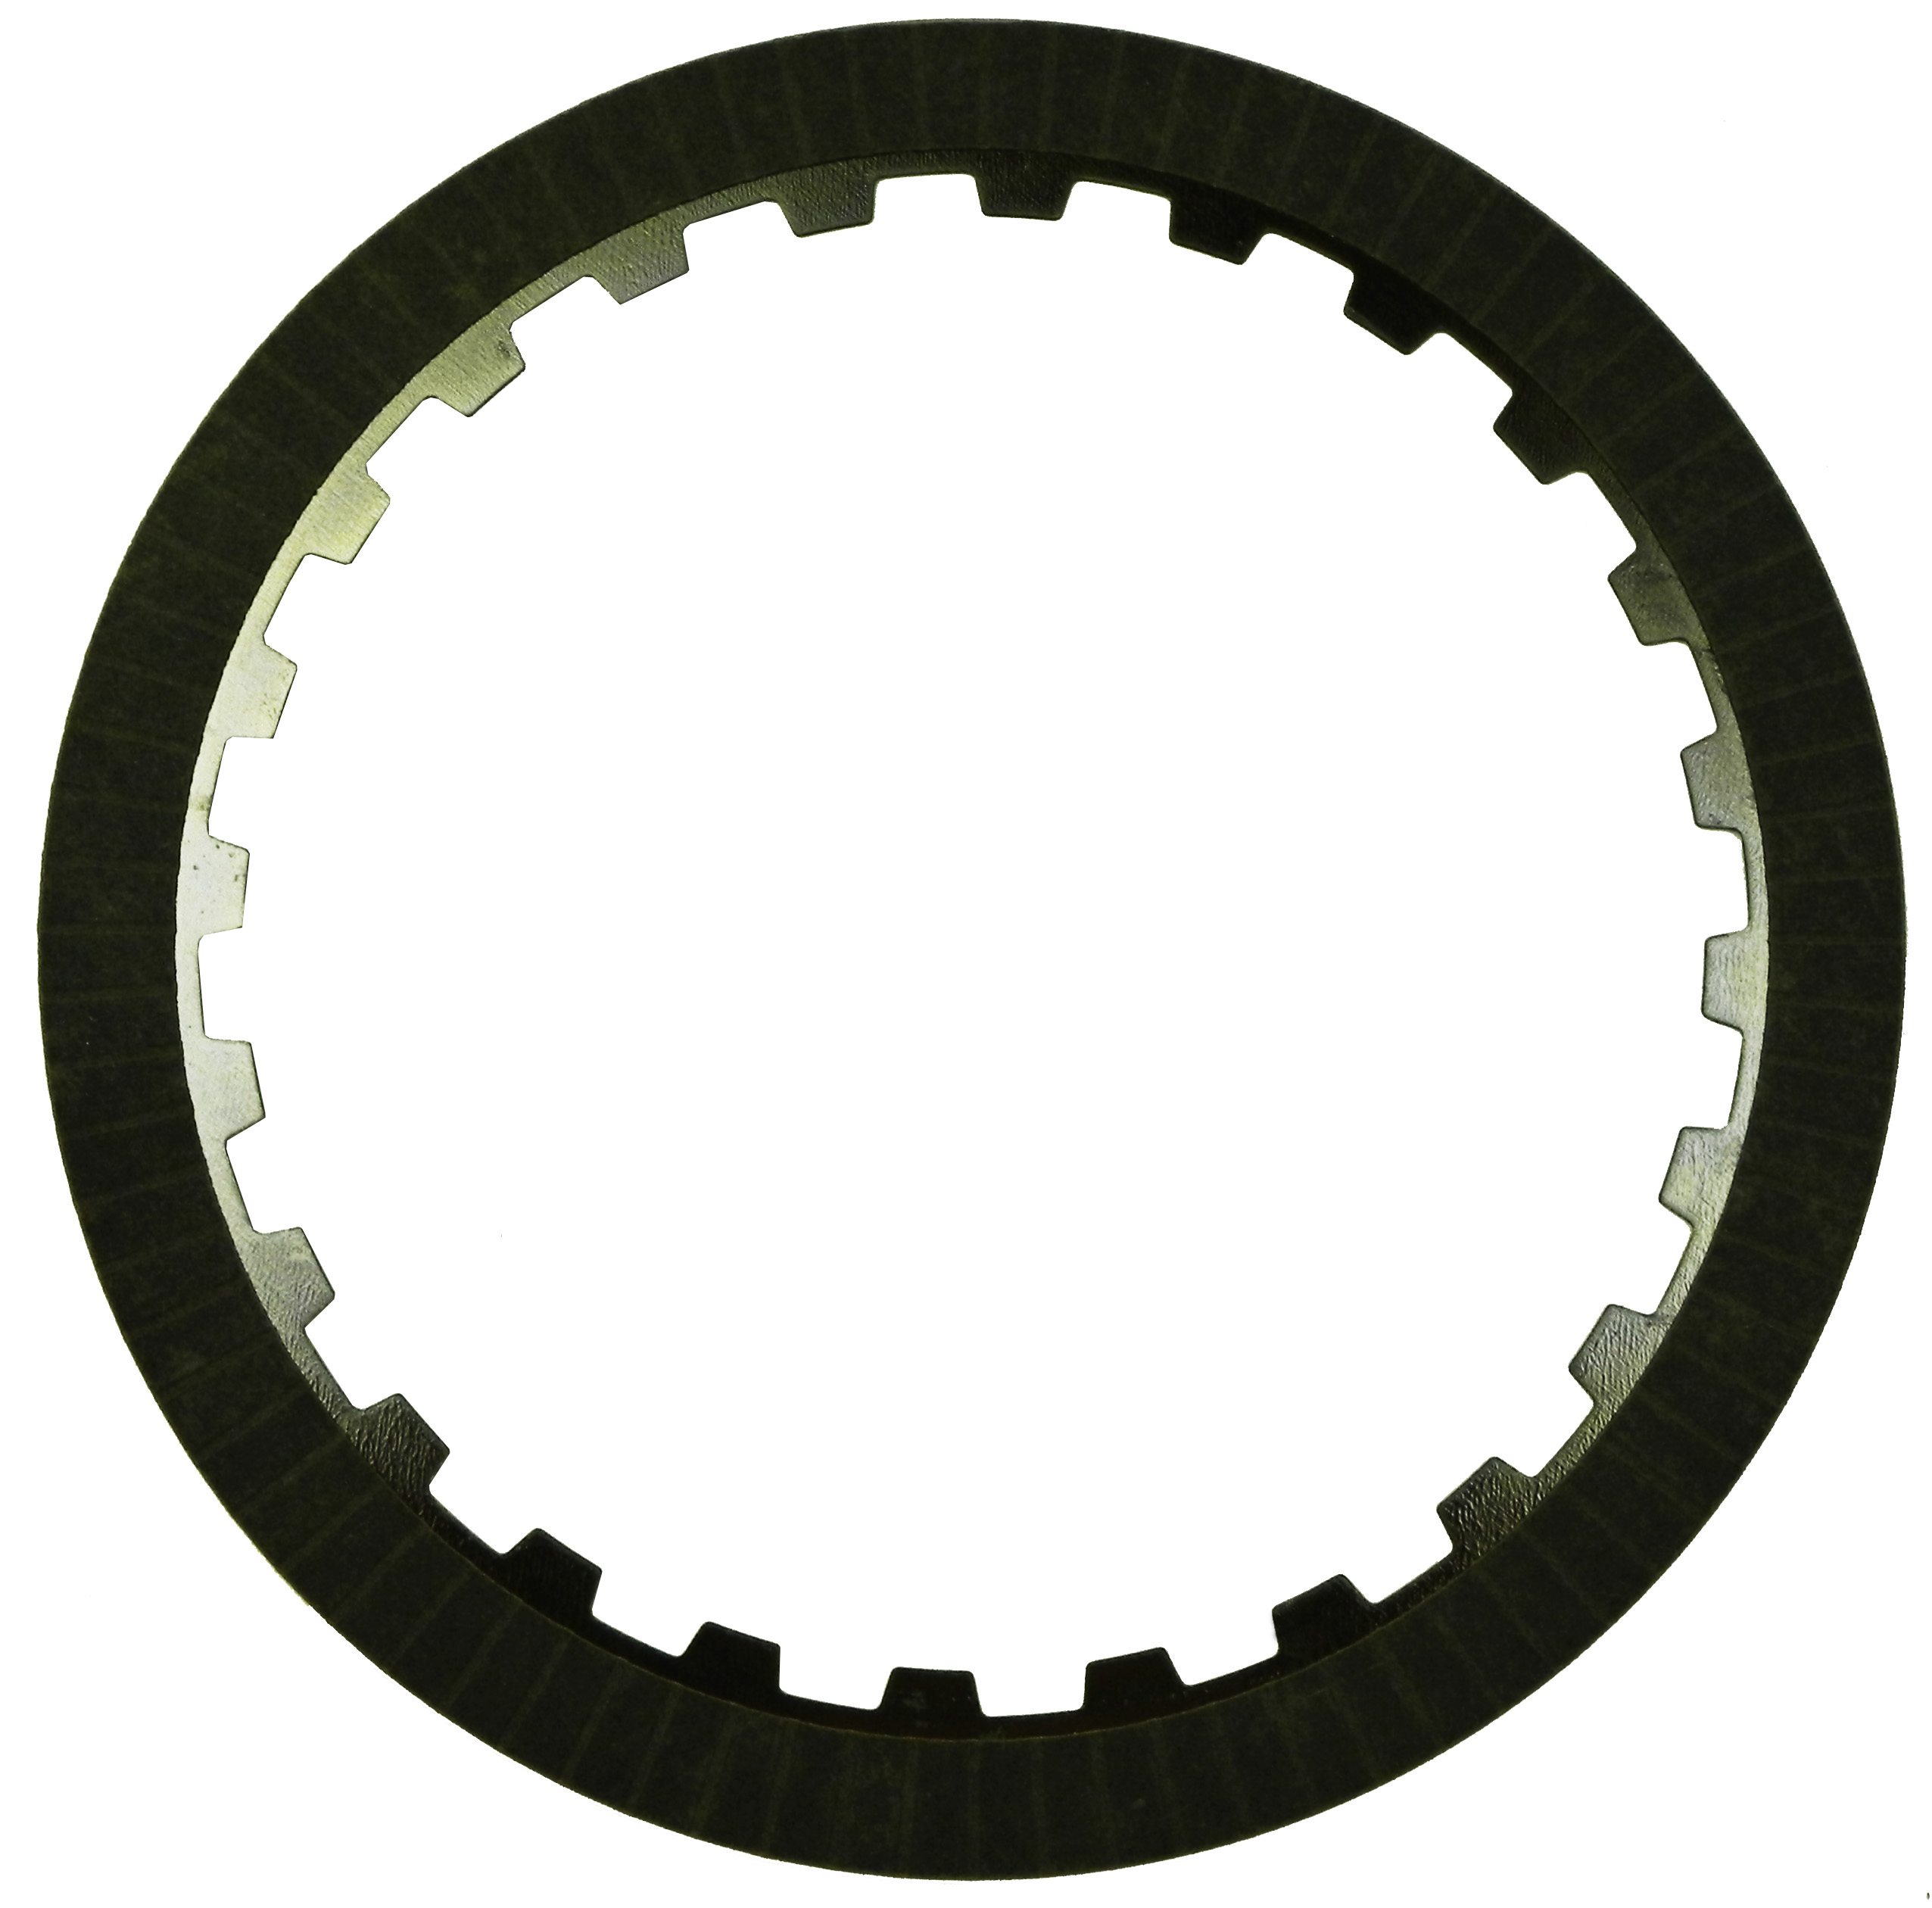 LT1000, LT2000, LT2400 SERIES High Energy Friction Clutch Plate